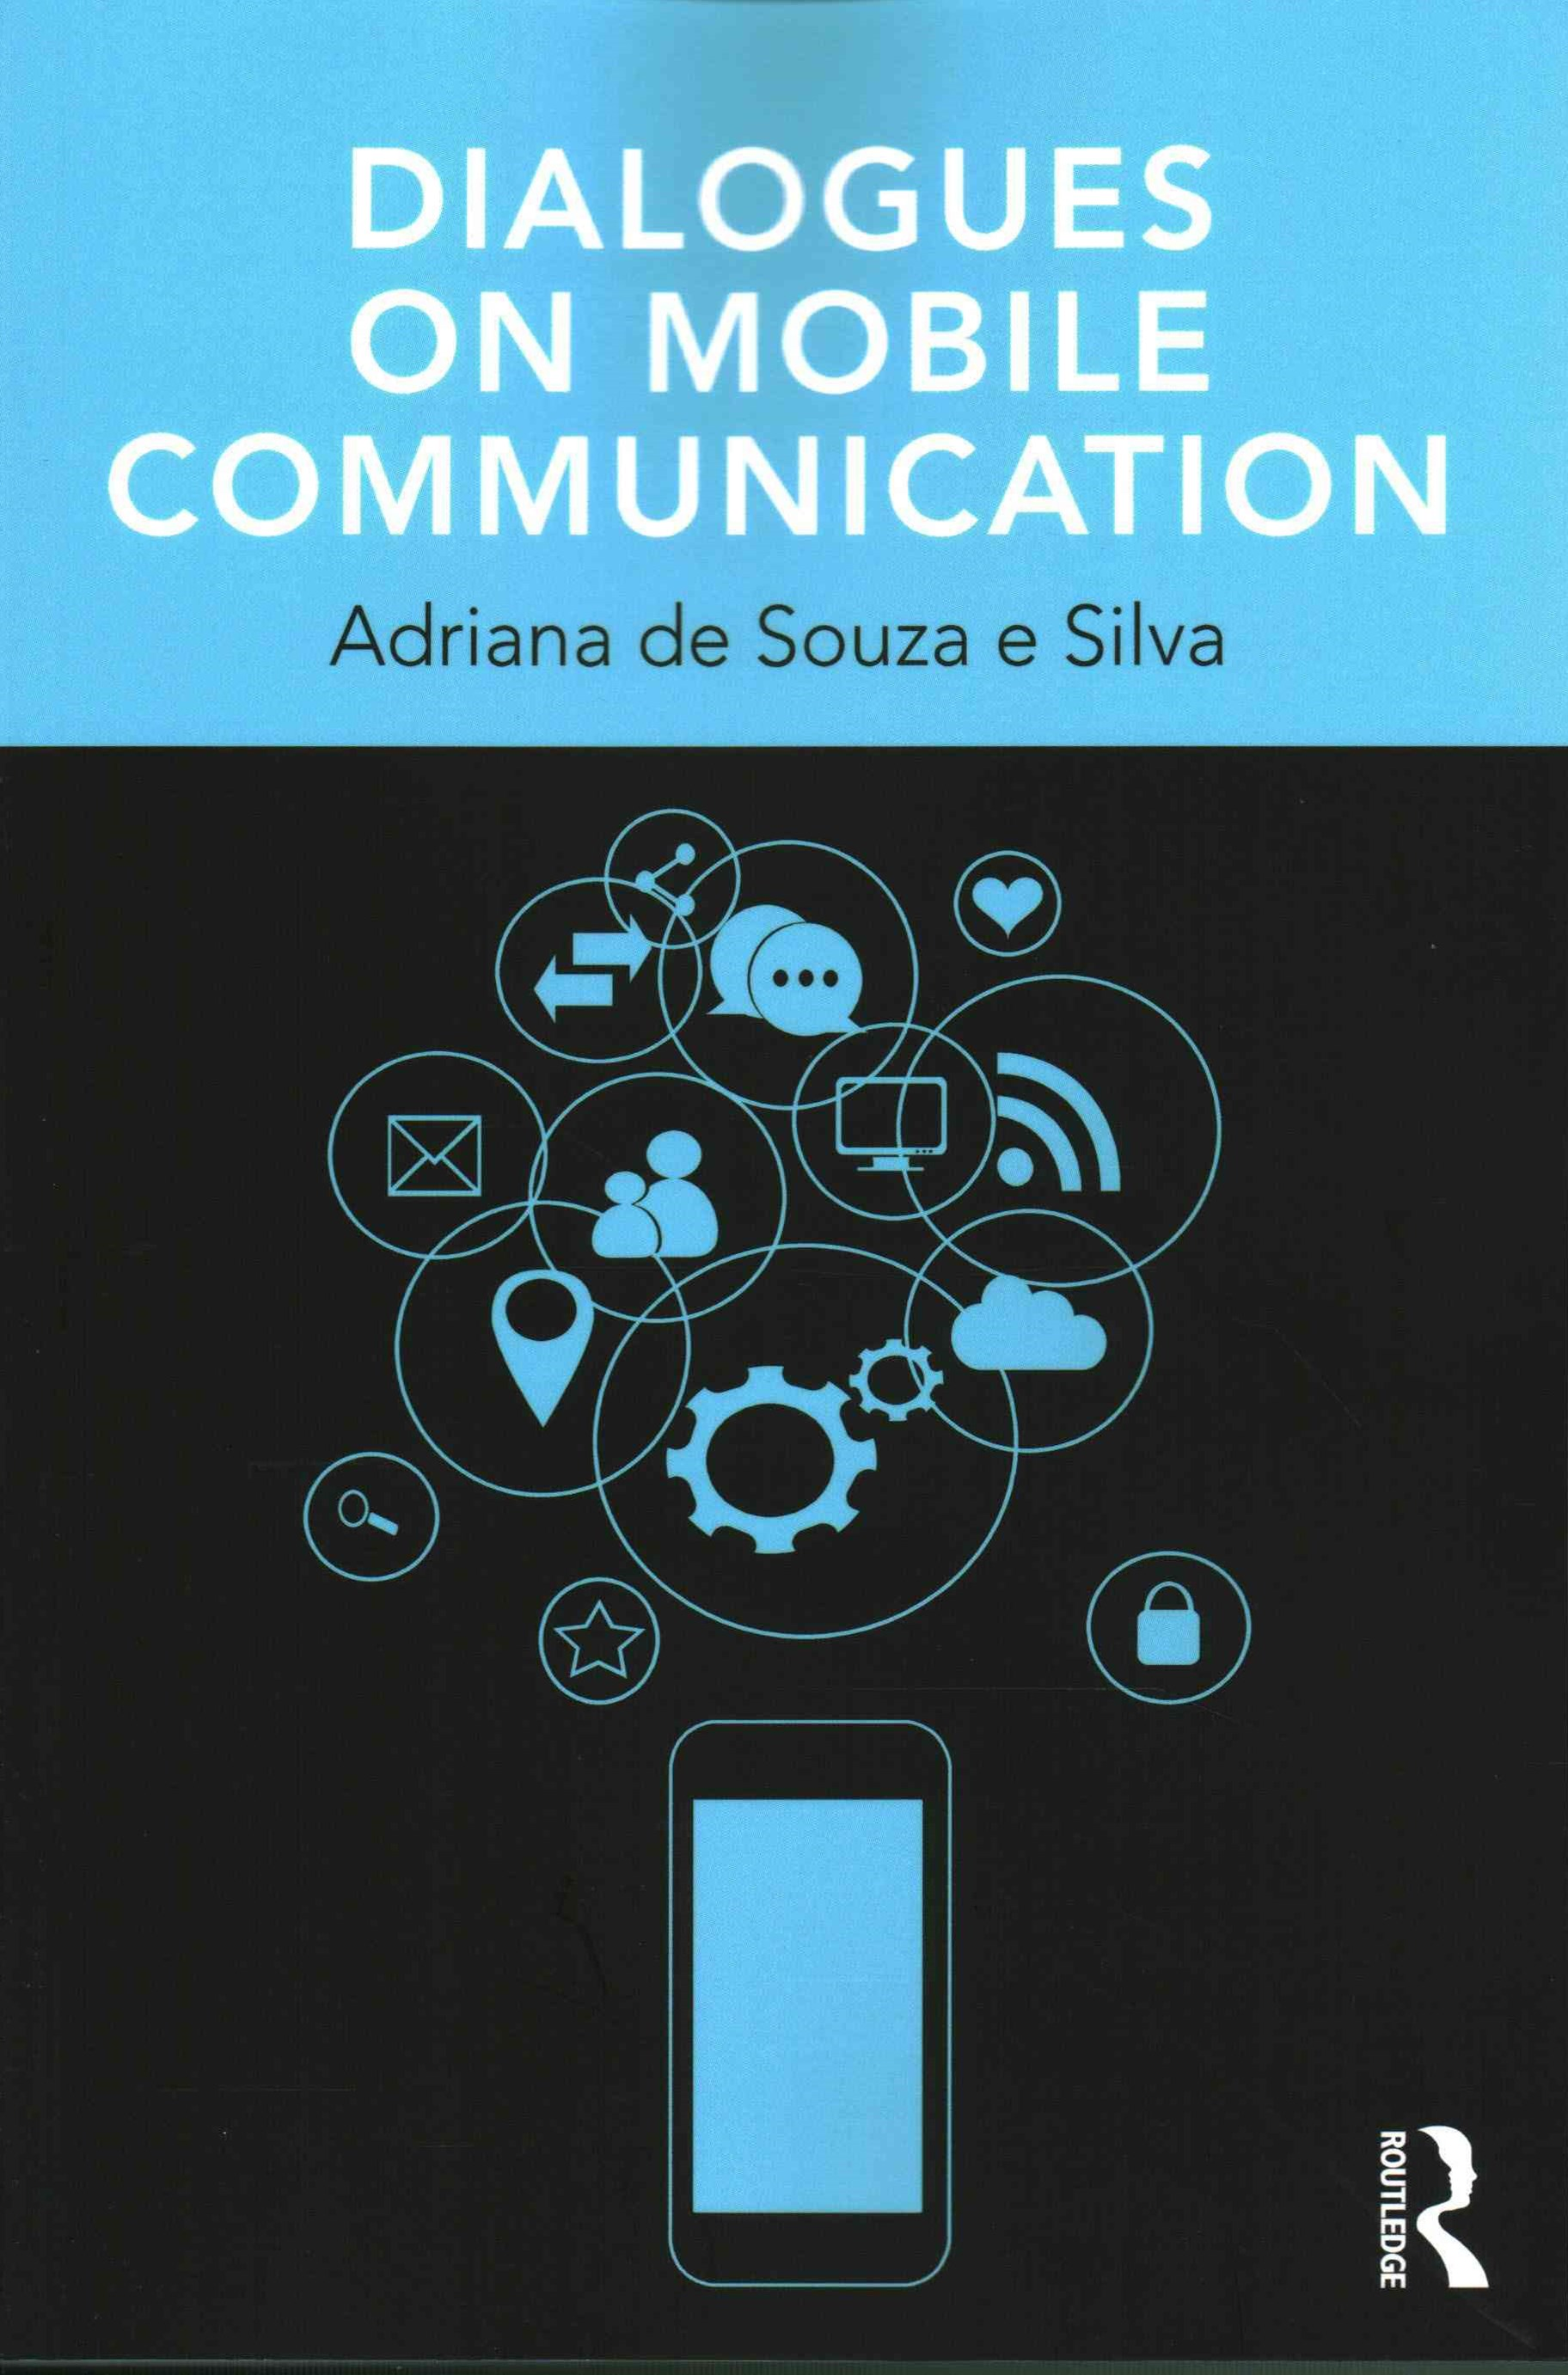 Dialogues on Mobile Communication